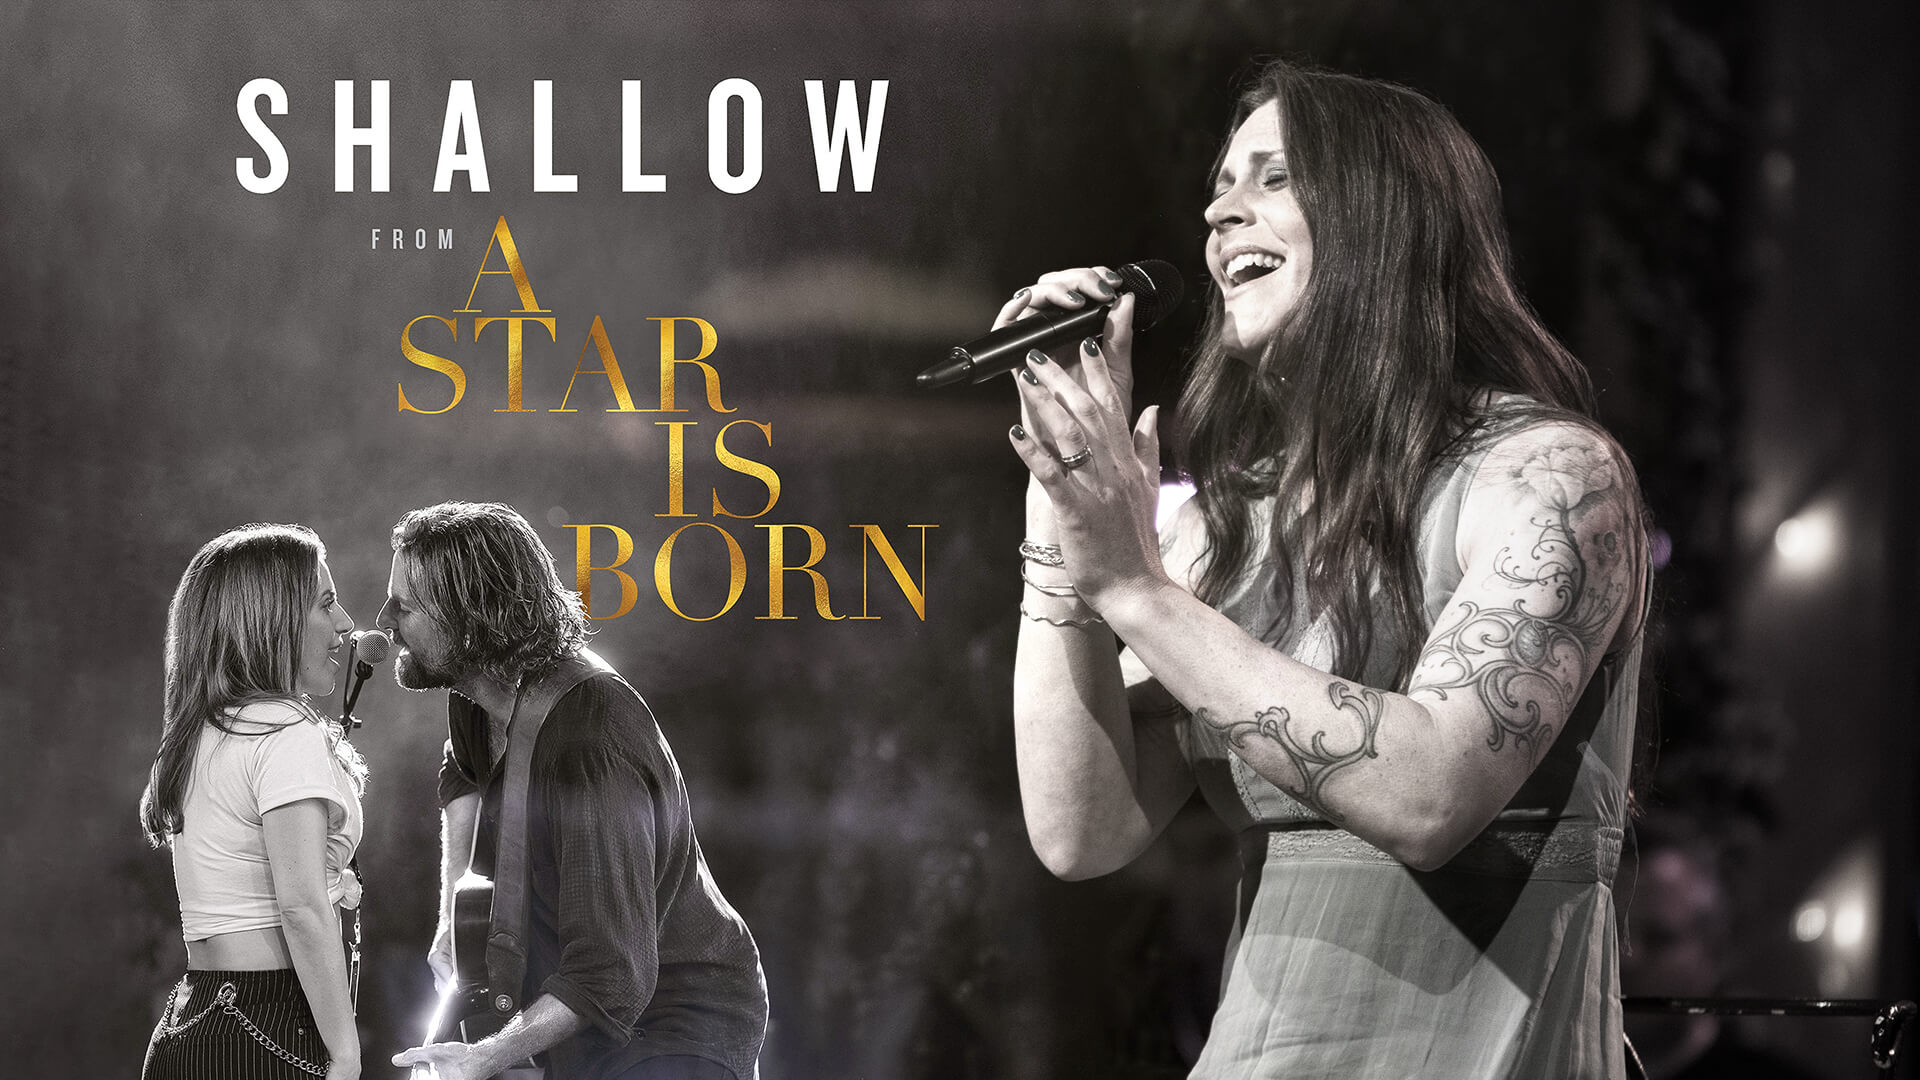 Floor Jansen Shallow A Star Is Born Lady Gaga